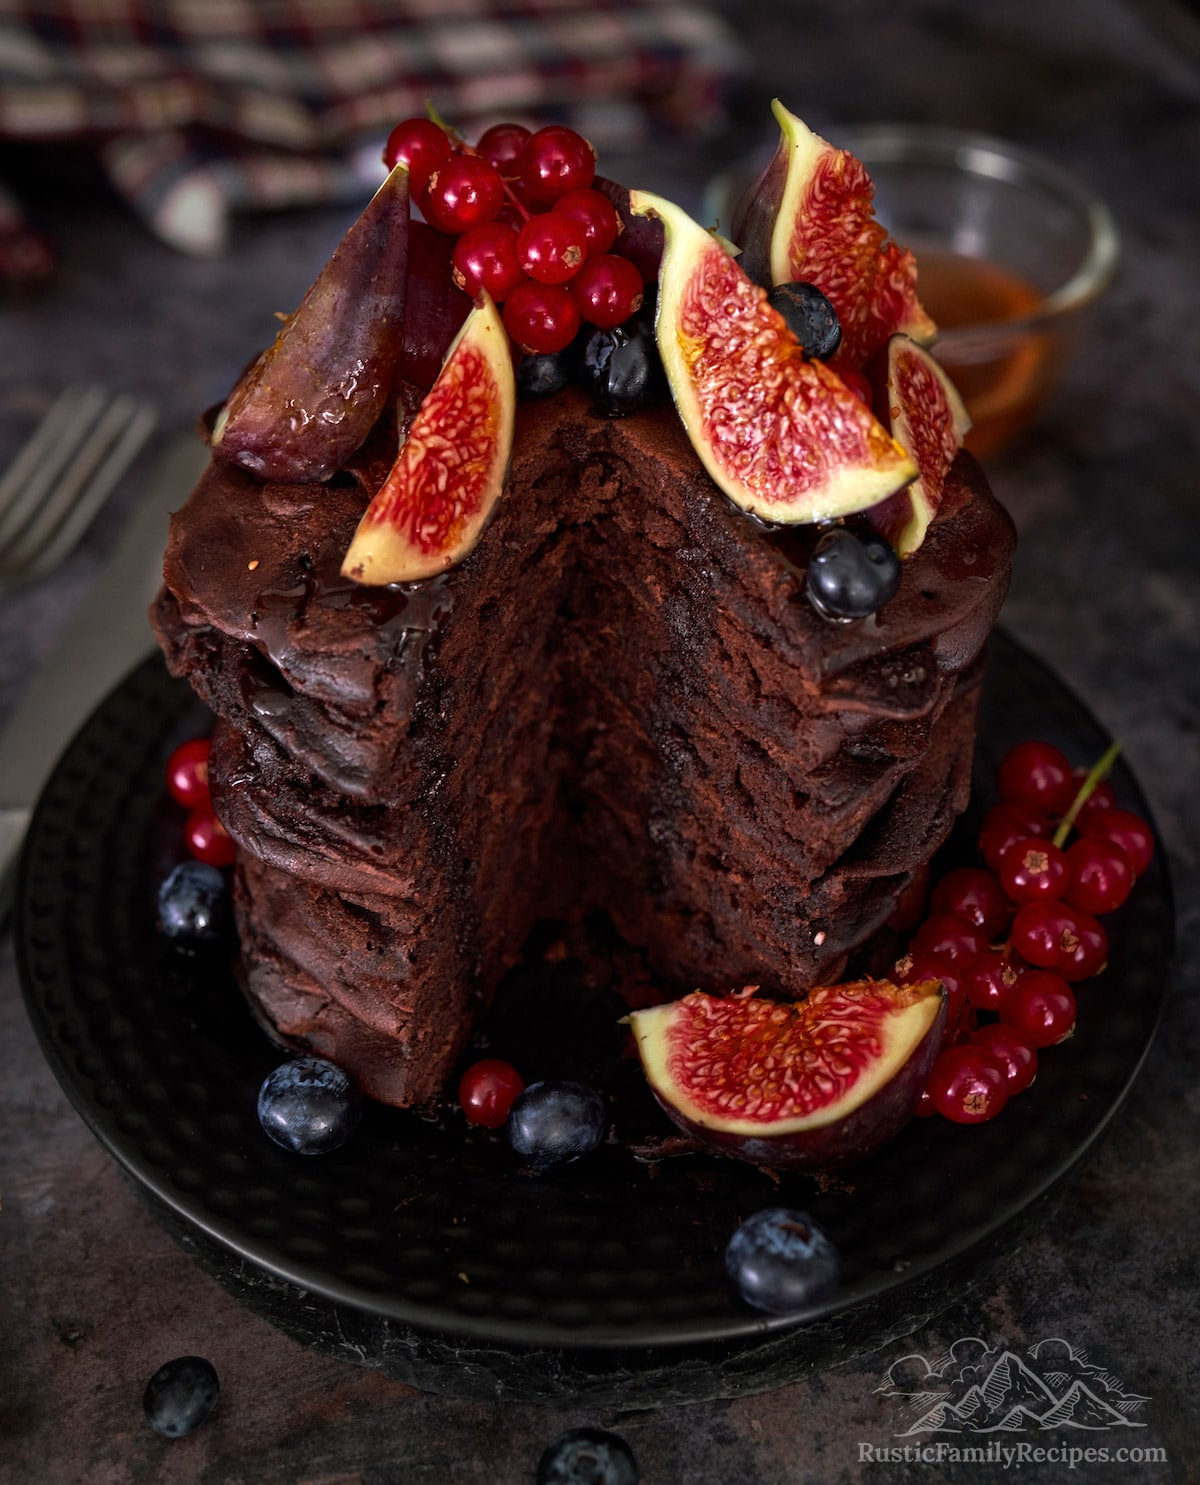 tall stack of chocolate pancakes topped with fruit with a cut taken out of the stack